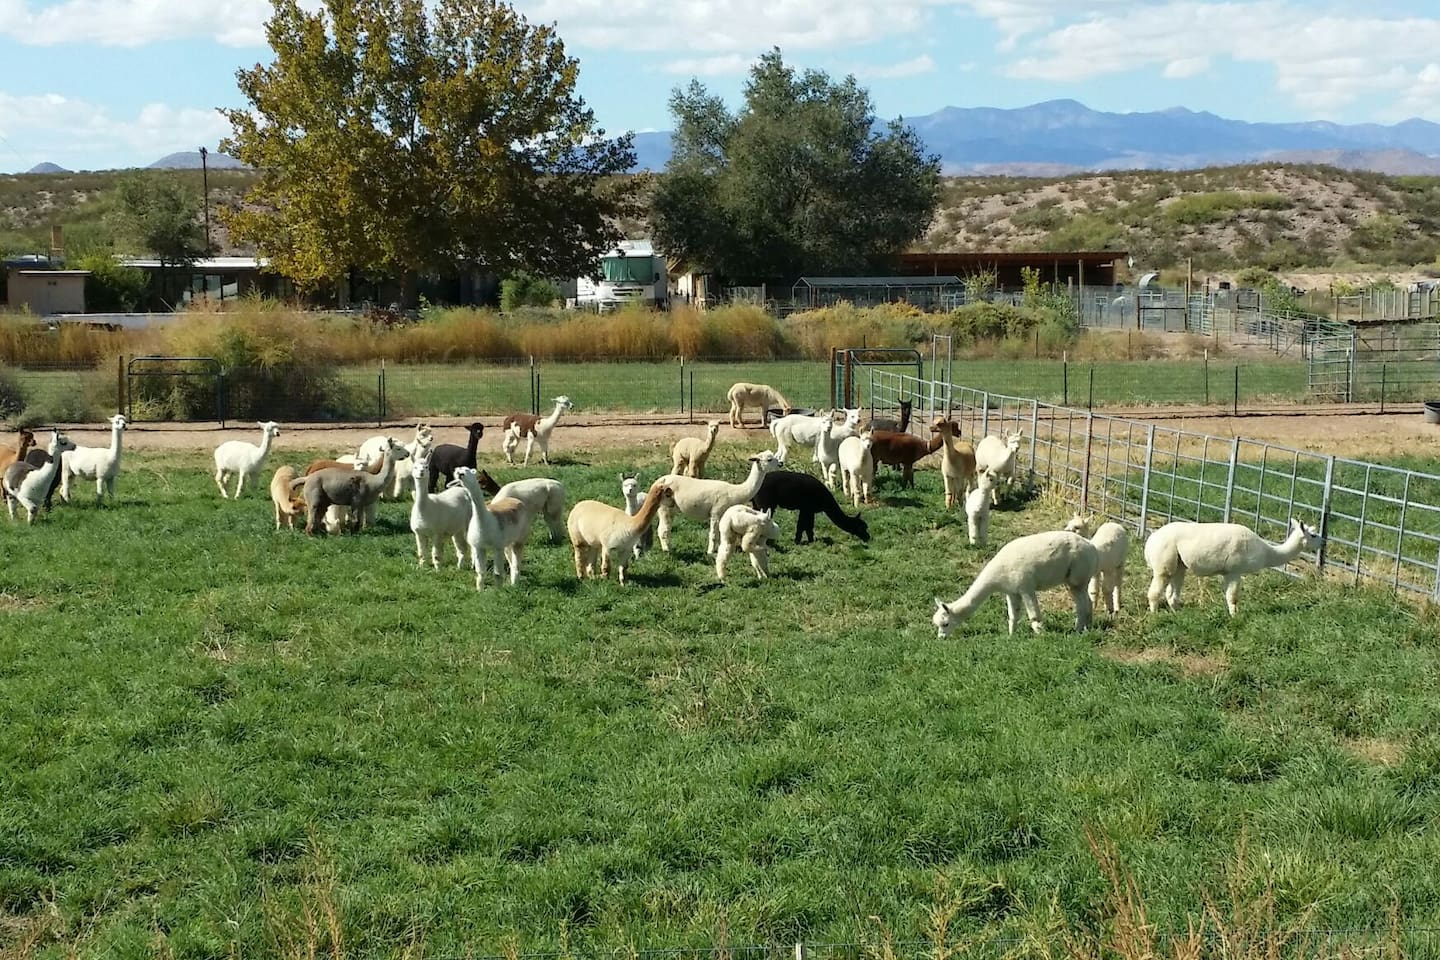 Our alpacas grazing in the pasture.